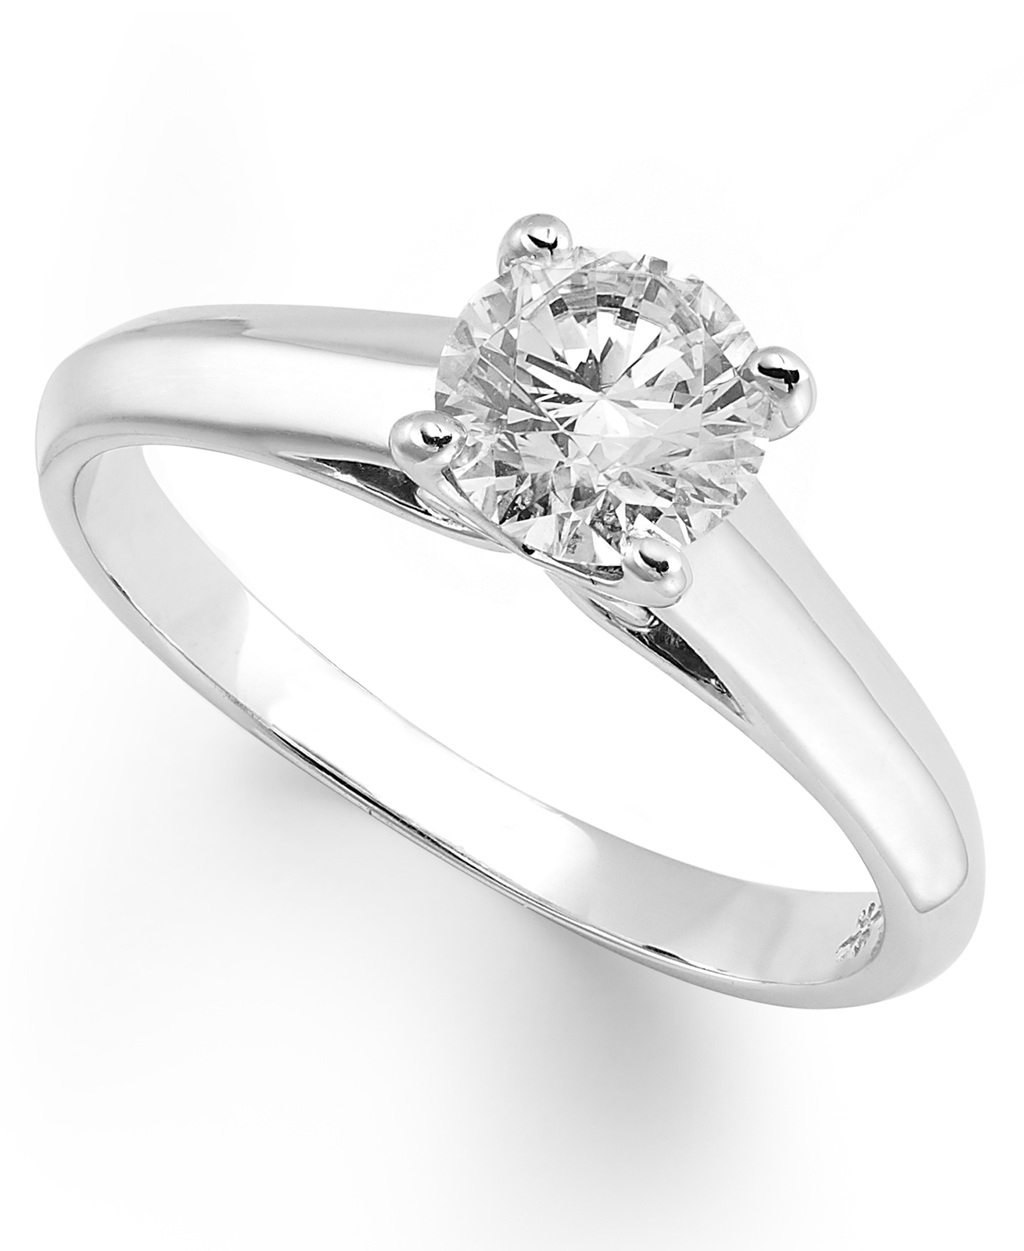 White Gold Solitaire Engagement Ring IU1054CWA1